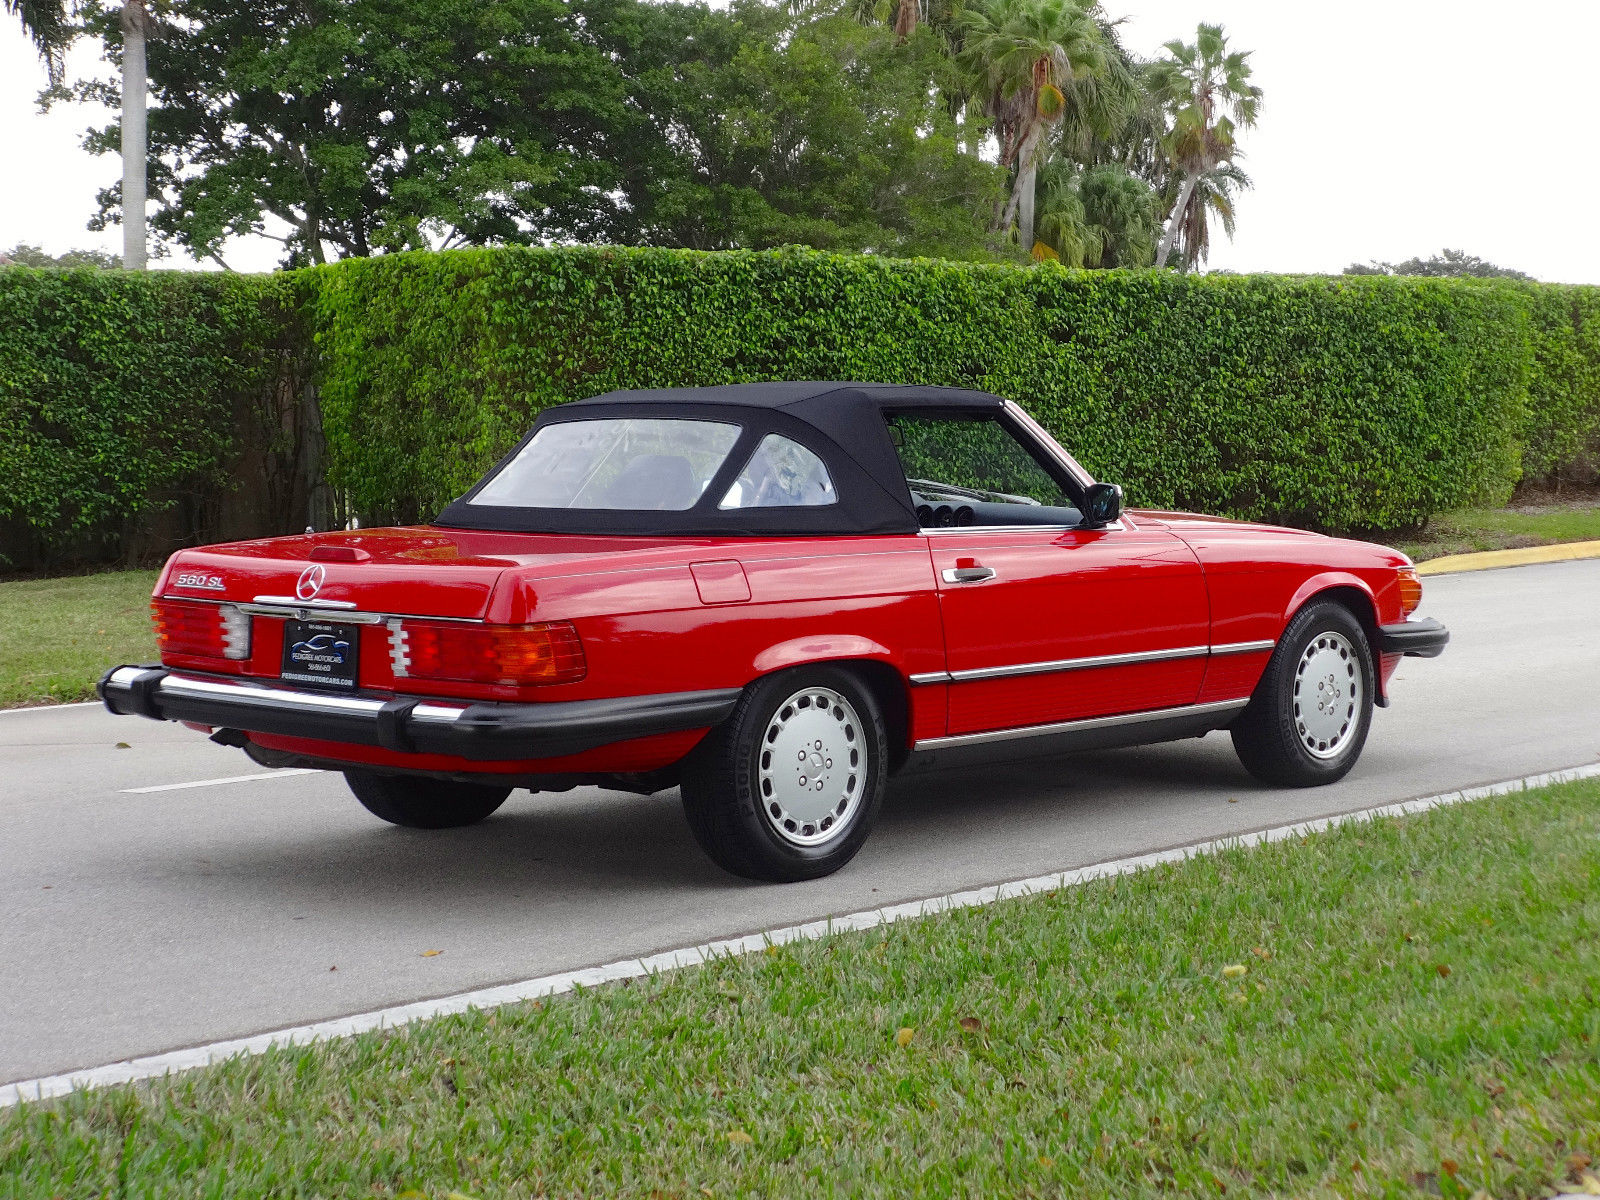 1988 mercedes benz 560sl convertible one owner florida for 1988 mercedes benz 560sl for sale